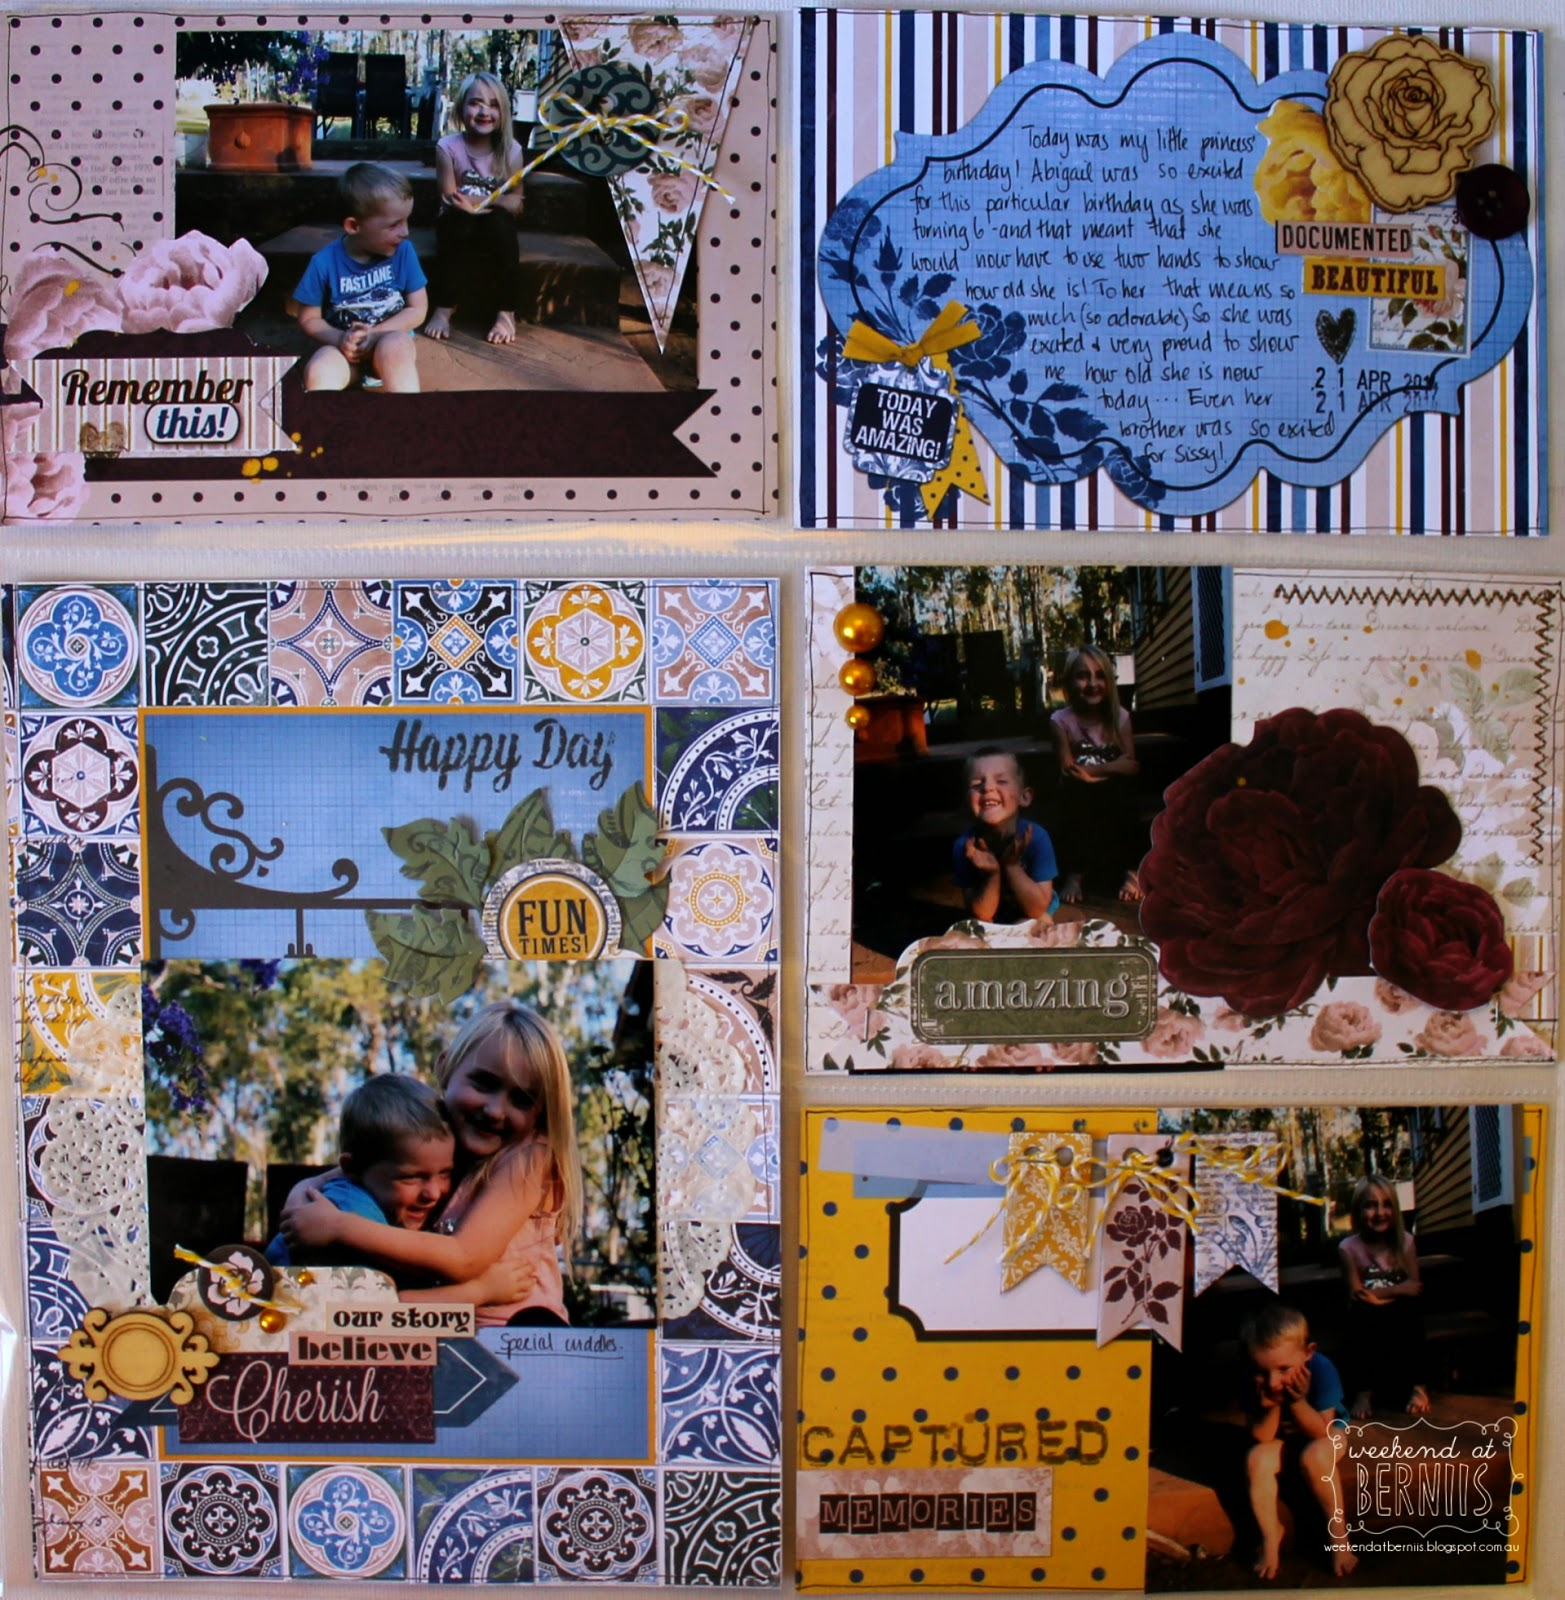 Happy Days Misc Me layout be Bernii Miller for BoBunny using the Rose Cafe collection.